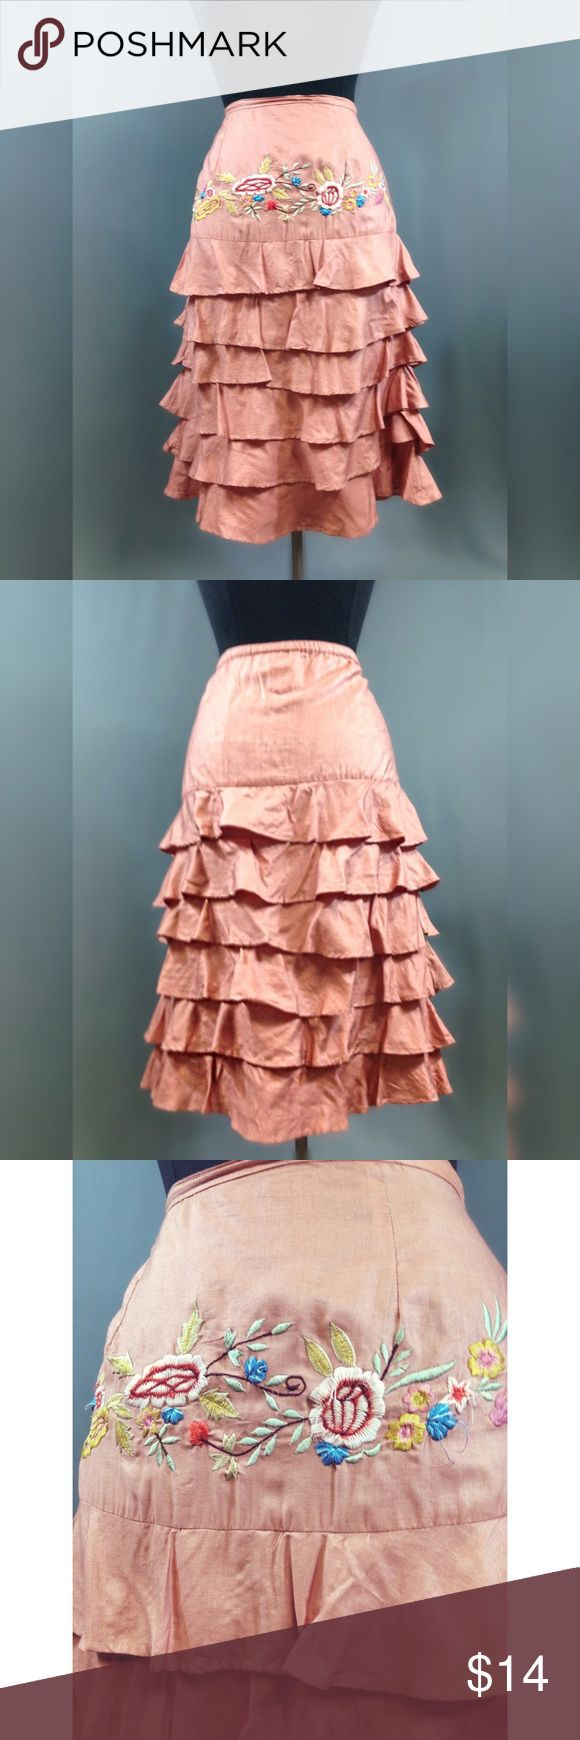 """Pink tiered flounce skirt Are you a boho flower child who works a cubicle?  A free spirit but need to follow professional dress codes?  I got a skirt for you.  This knee-length skirt is a gorgeous light coral color with an embroidered front panel and tiers of ruffles.  Side zip.  Flaws: tiny pinhole near side zip Brand: Papillon   Size: L (measures as size 12, marked as such)  MEASUREMENTS: (flat, inside out) Length: 26.5 waist to hem Waist: 32"""" Hips: 40"""" Skirts Midi"""